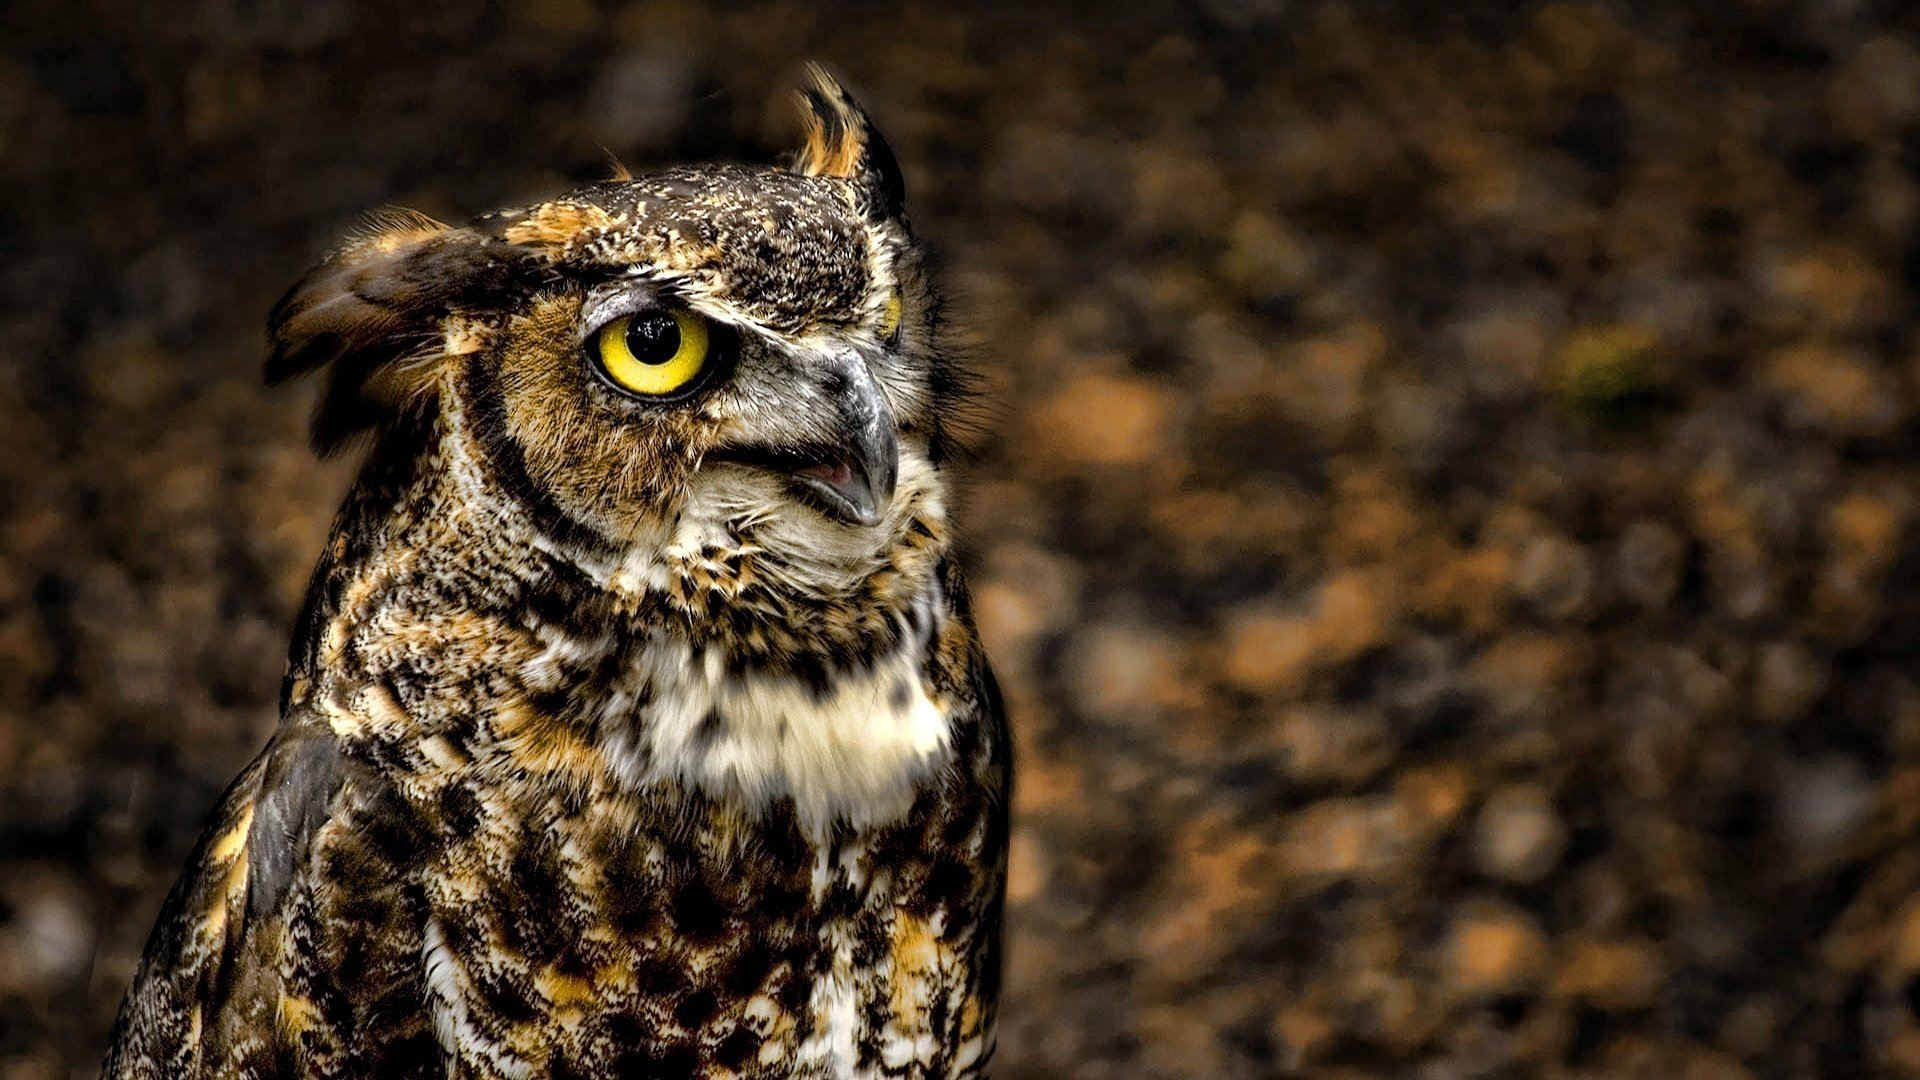 Download full hd 1920x1080 Great Horned Owl PC background ID:297776 for free